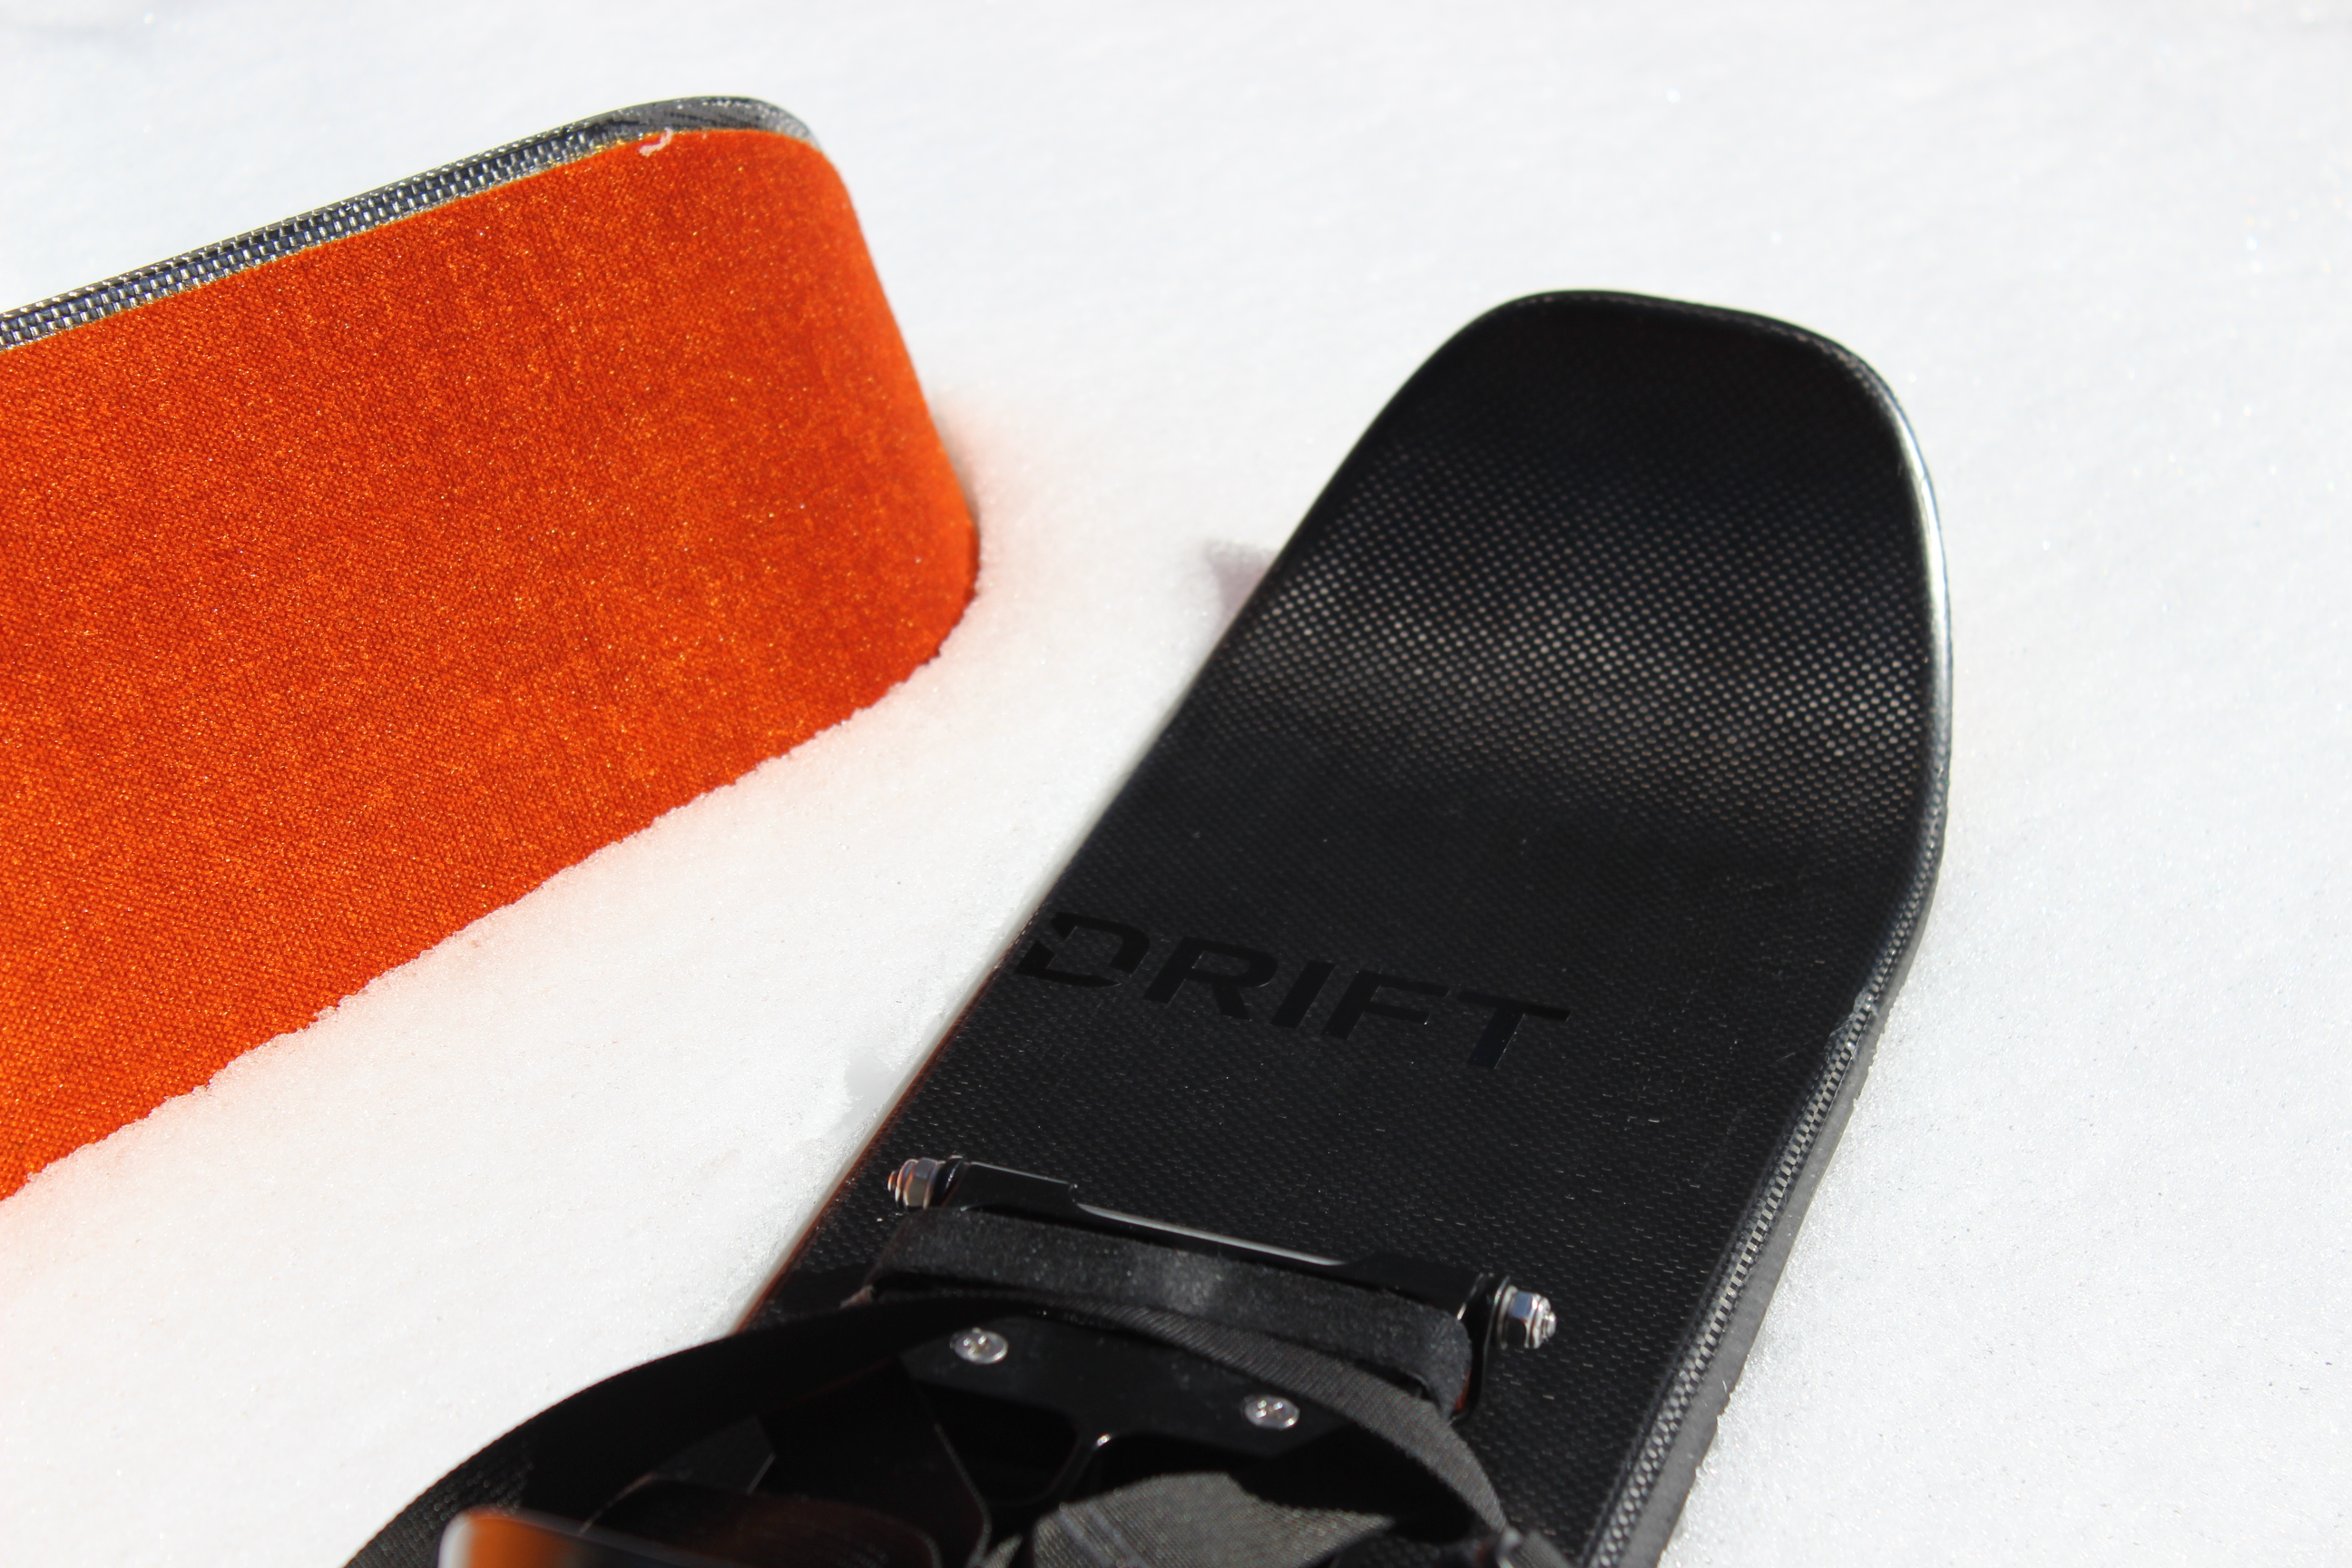 DRIFT Boards: Van Freeride naar Backcountry zonder splitboard